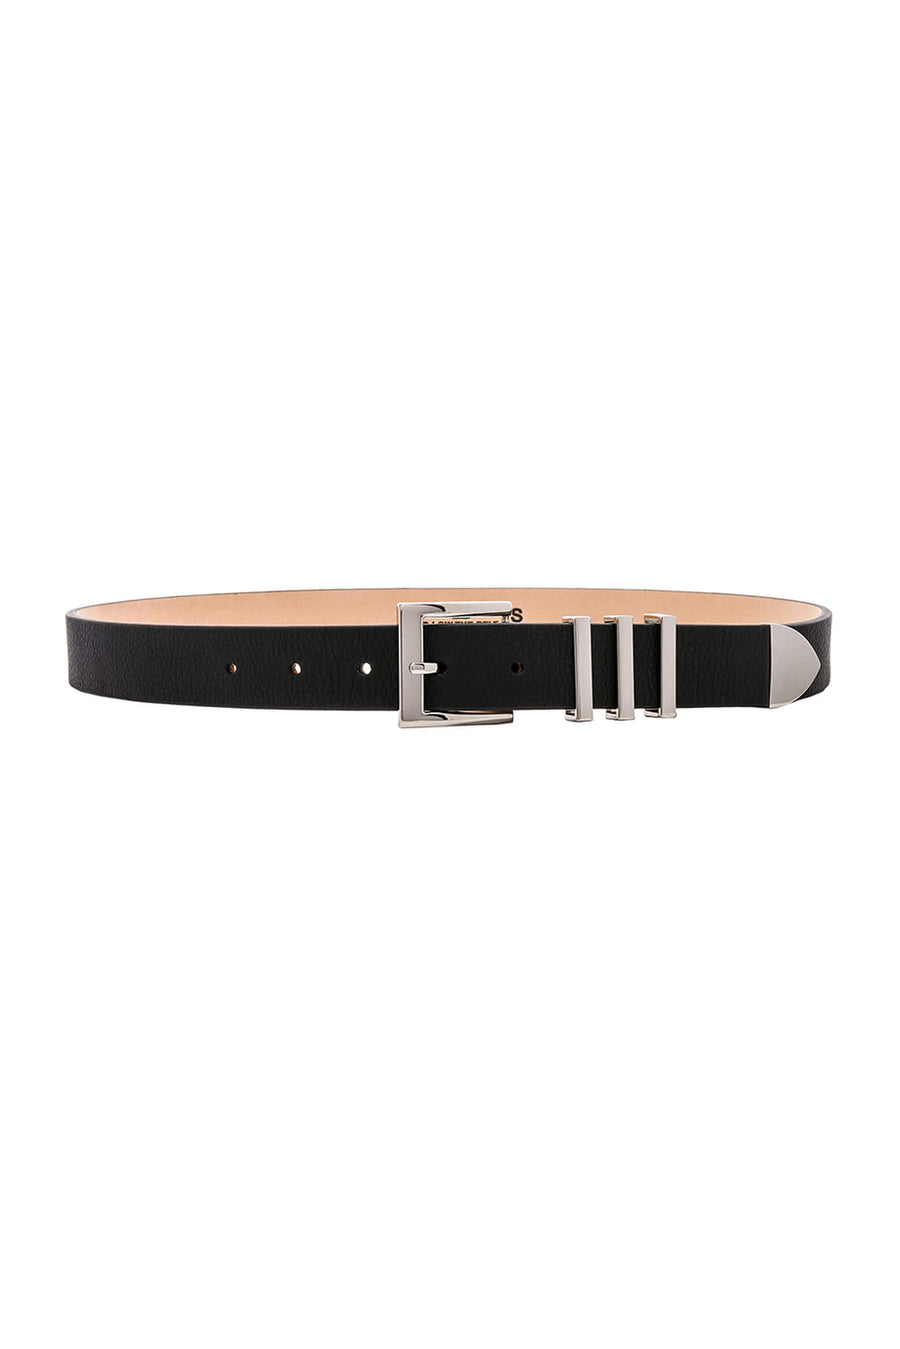 RICHIE HIP BELT